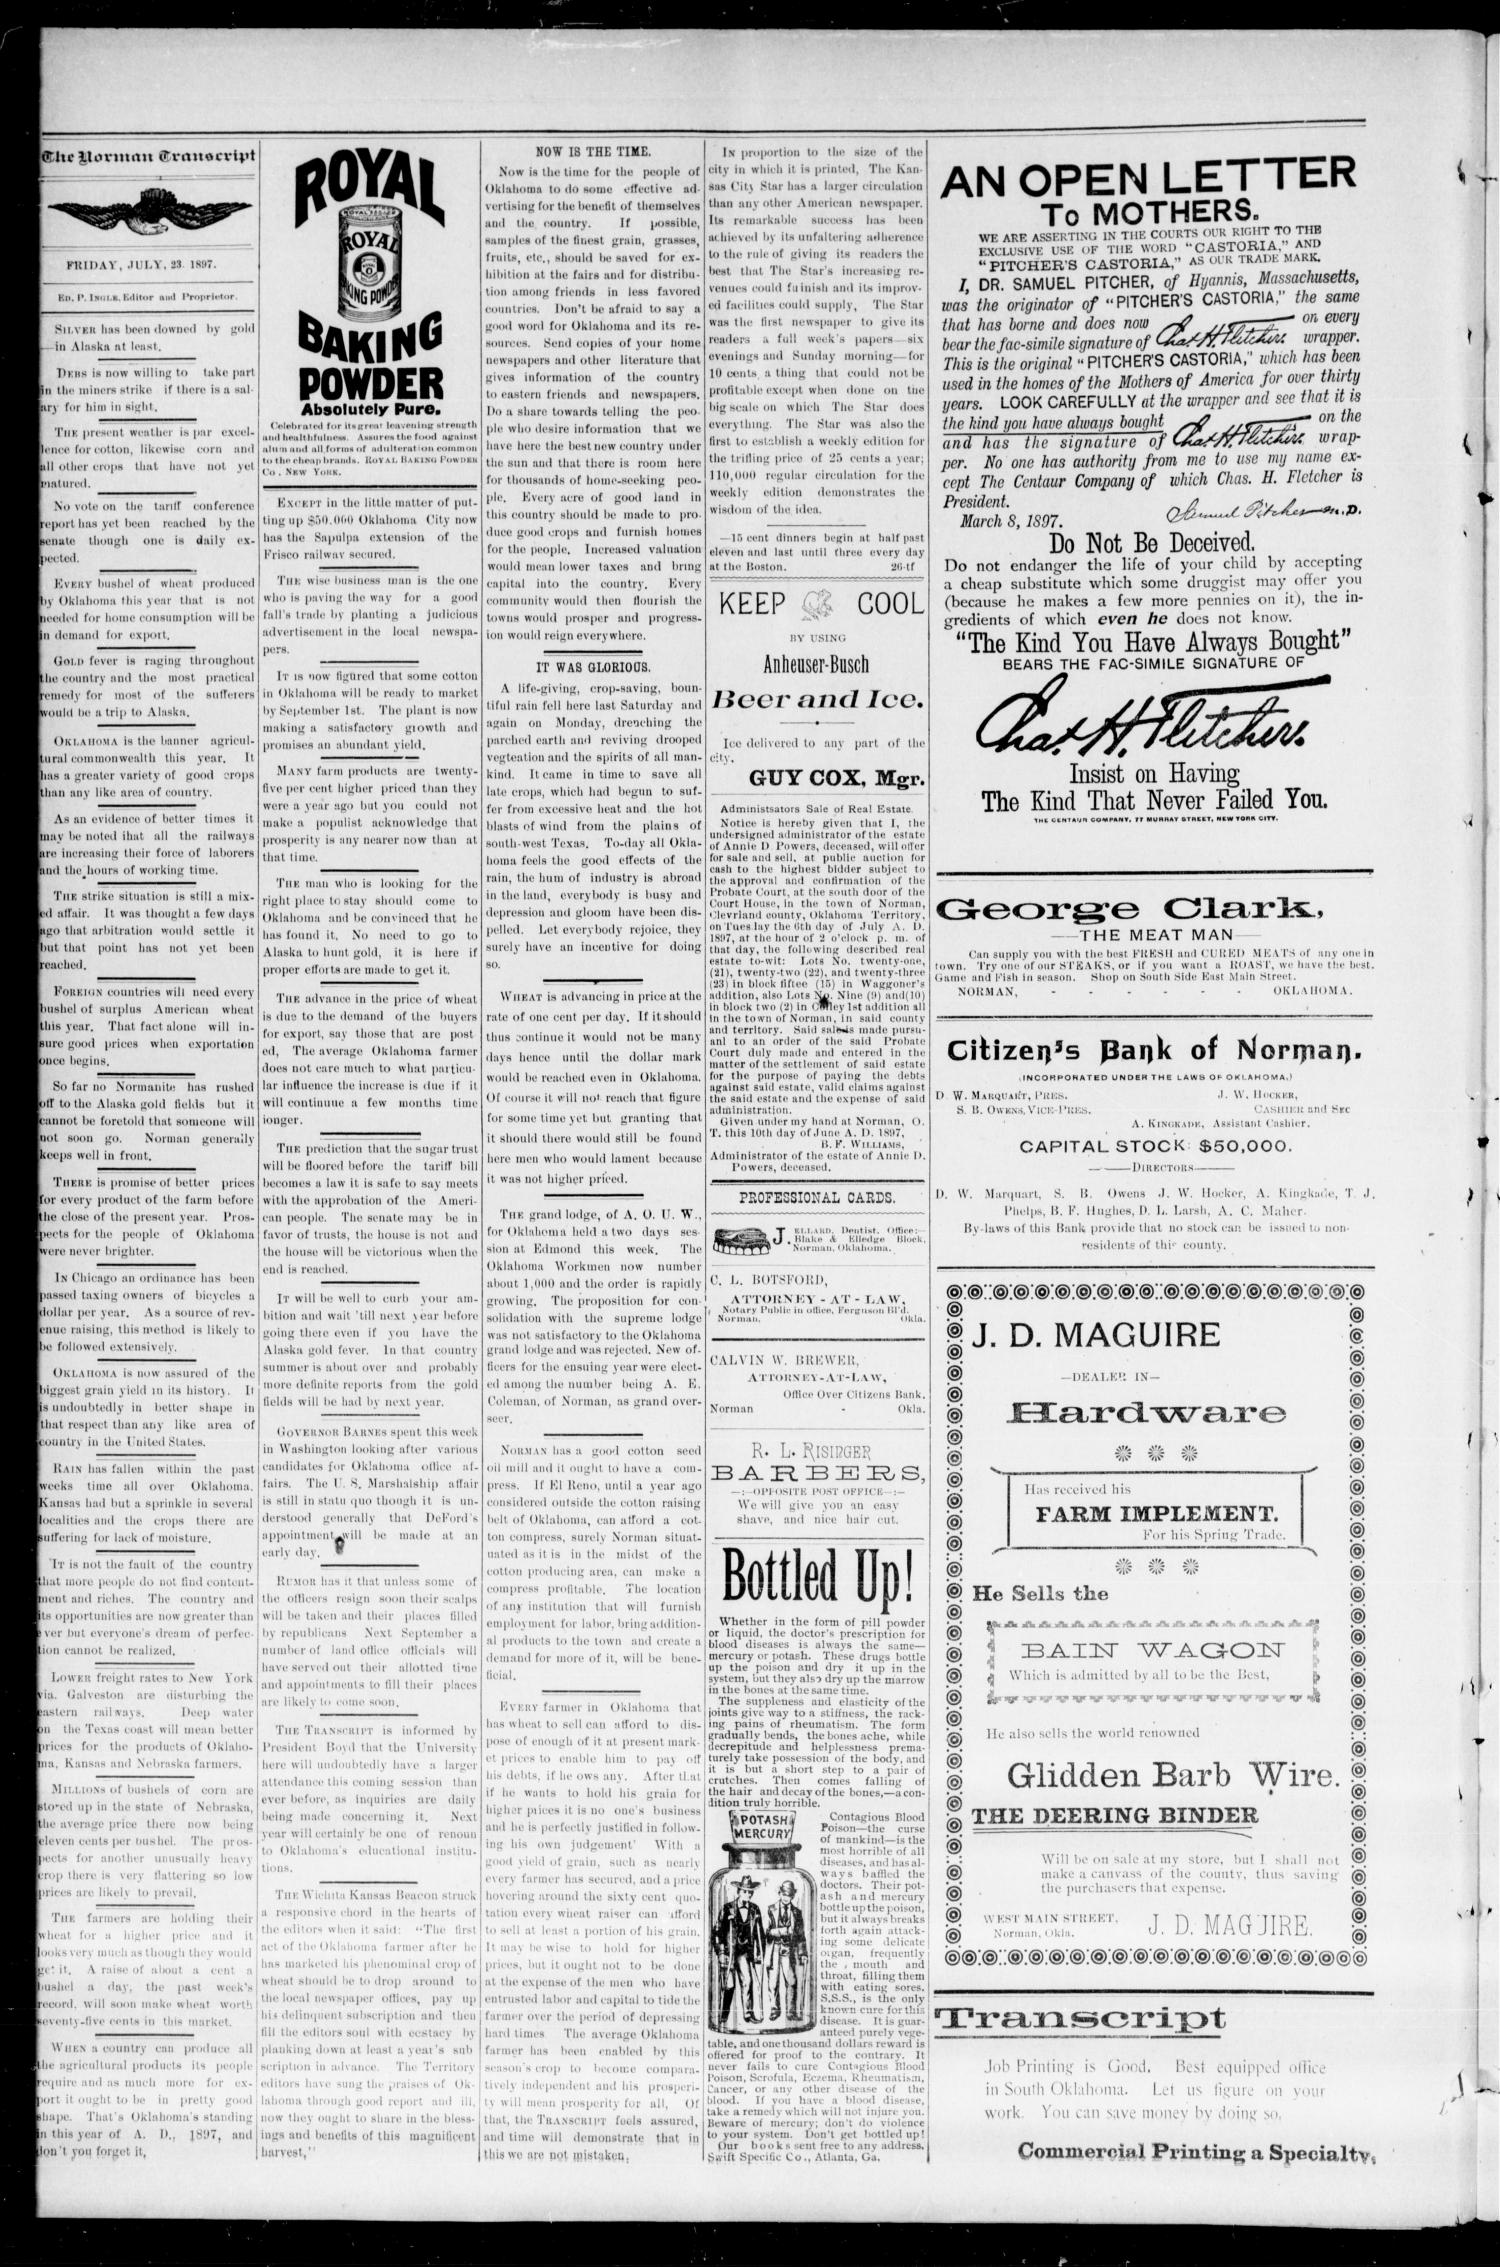 The Norman Transcript. (Norman, Okla. Terr.), Vol. 08, No. 41, Ed. 1 Friday, July 23, 1897                                                                                                      [Sequence #]: 4 of 8